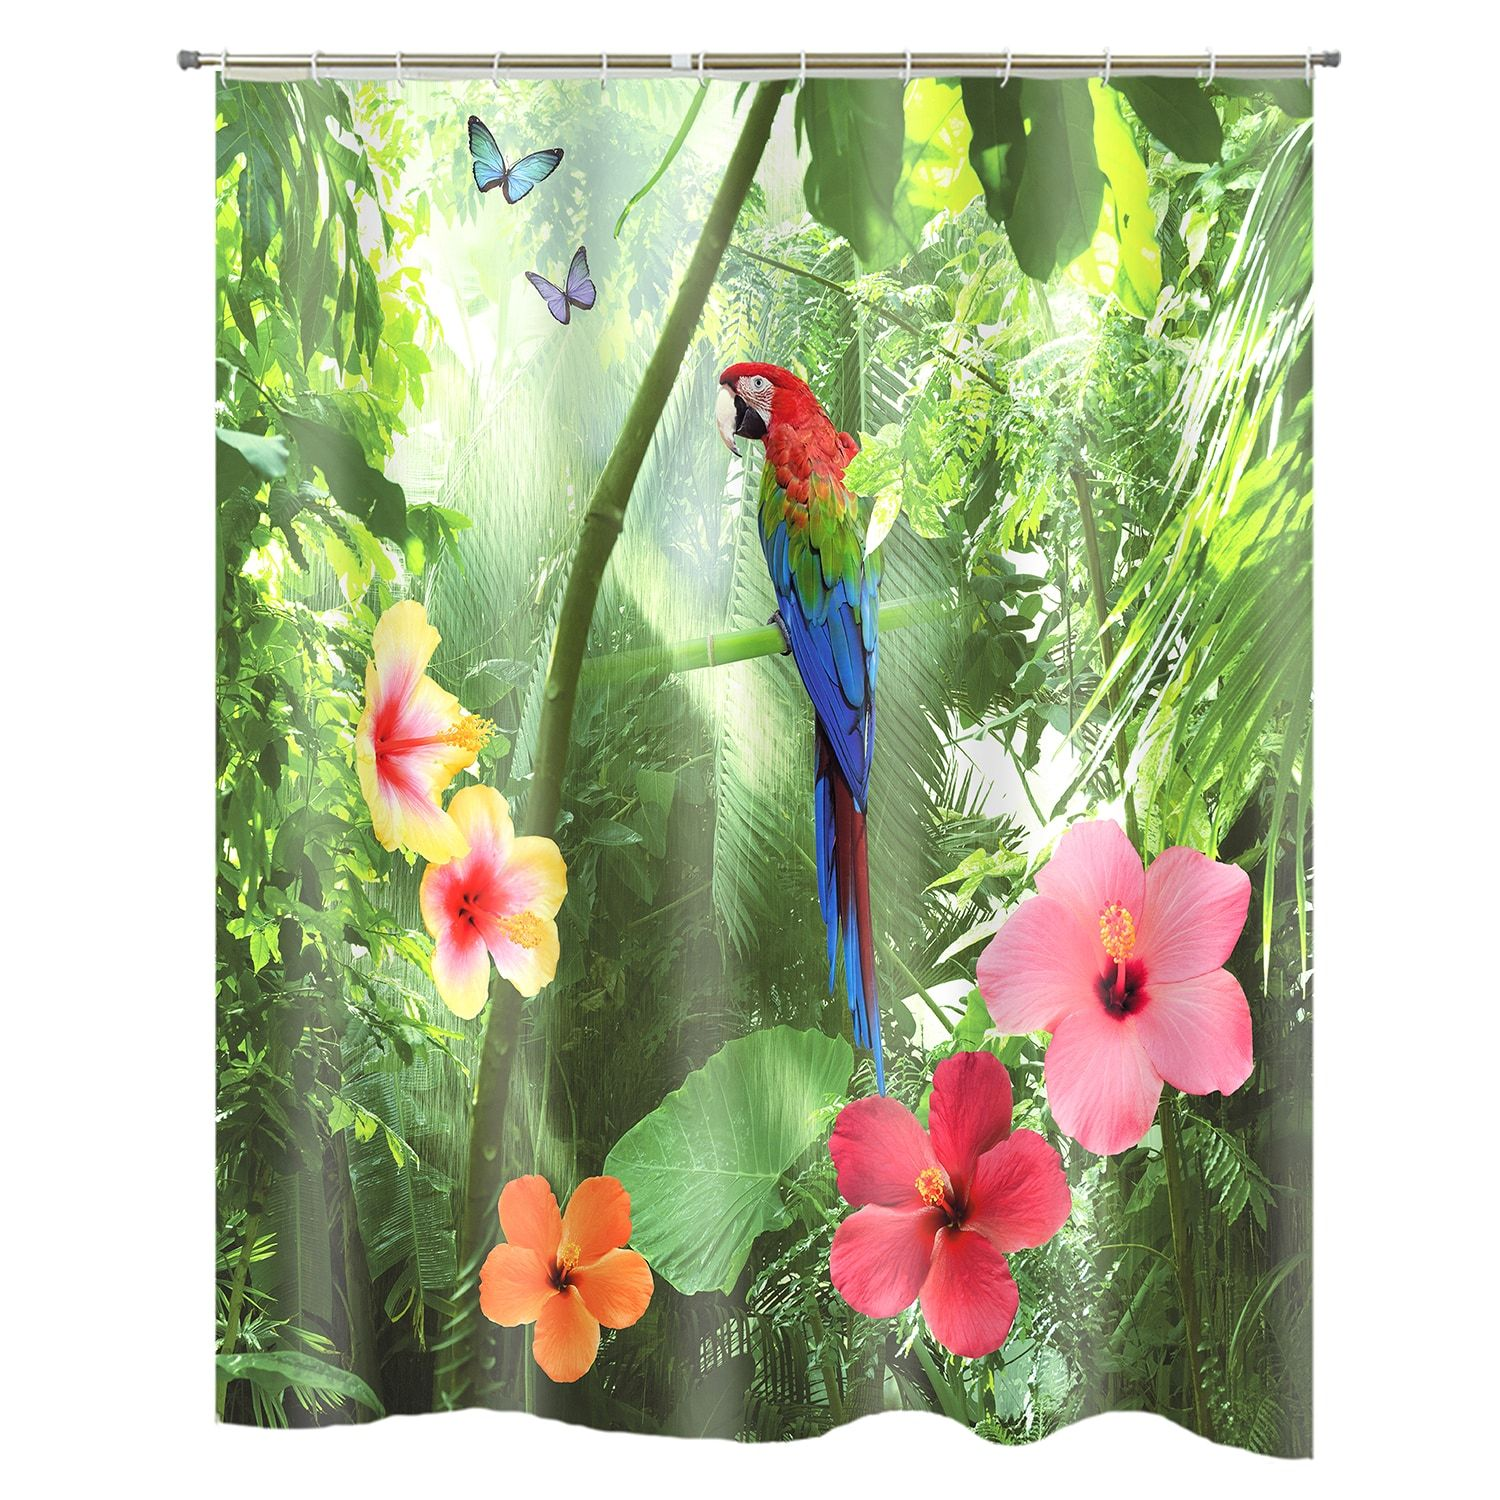 Popular Bath Parrot Shower Curtain Affiliate Bath Ad Popular